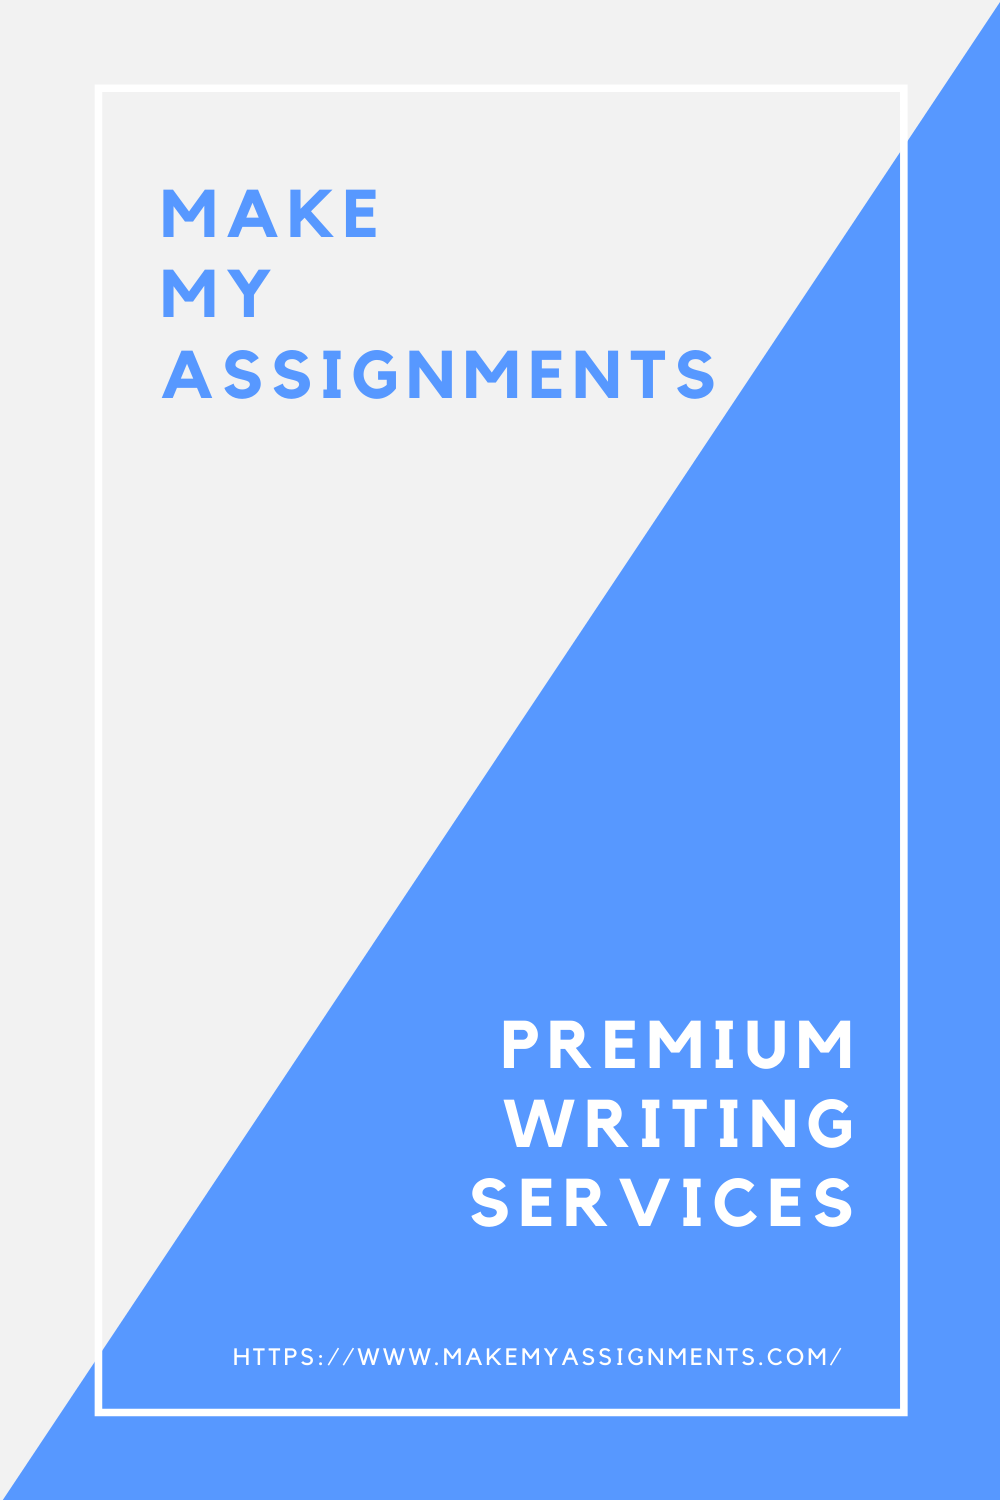 Stay on top with MakeMyAssignments.com homework help